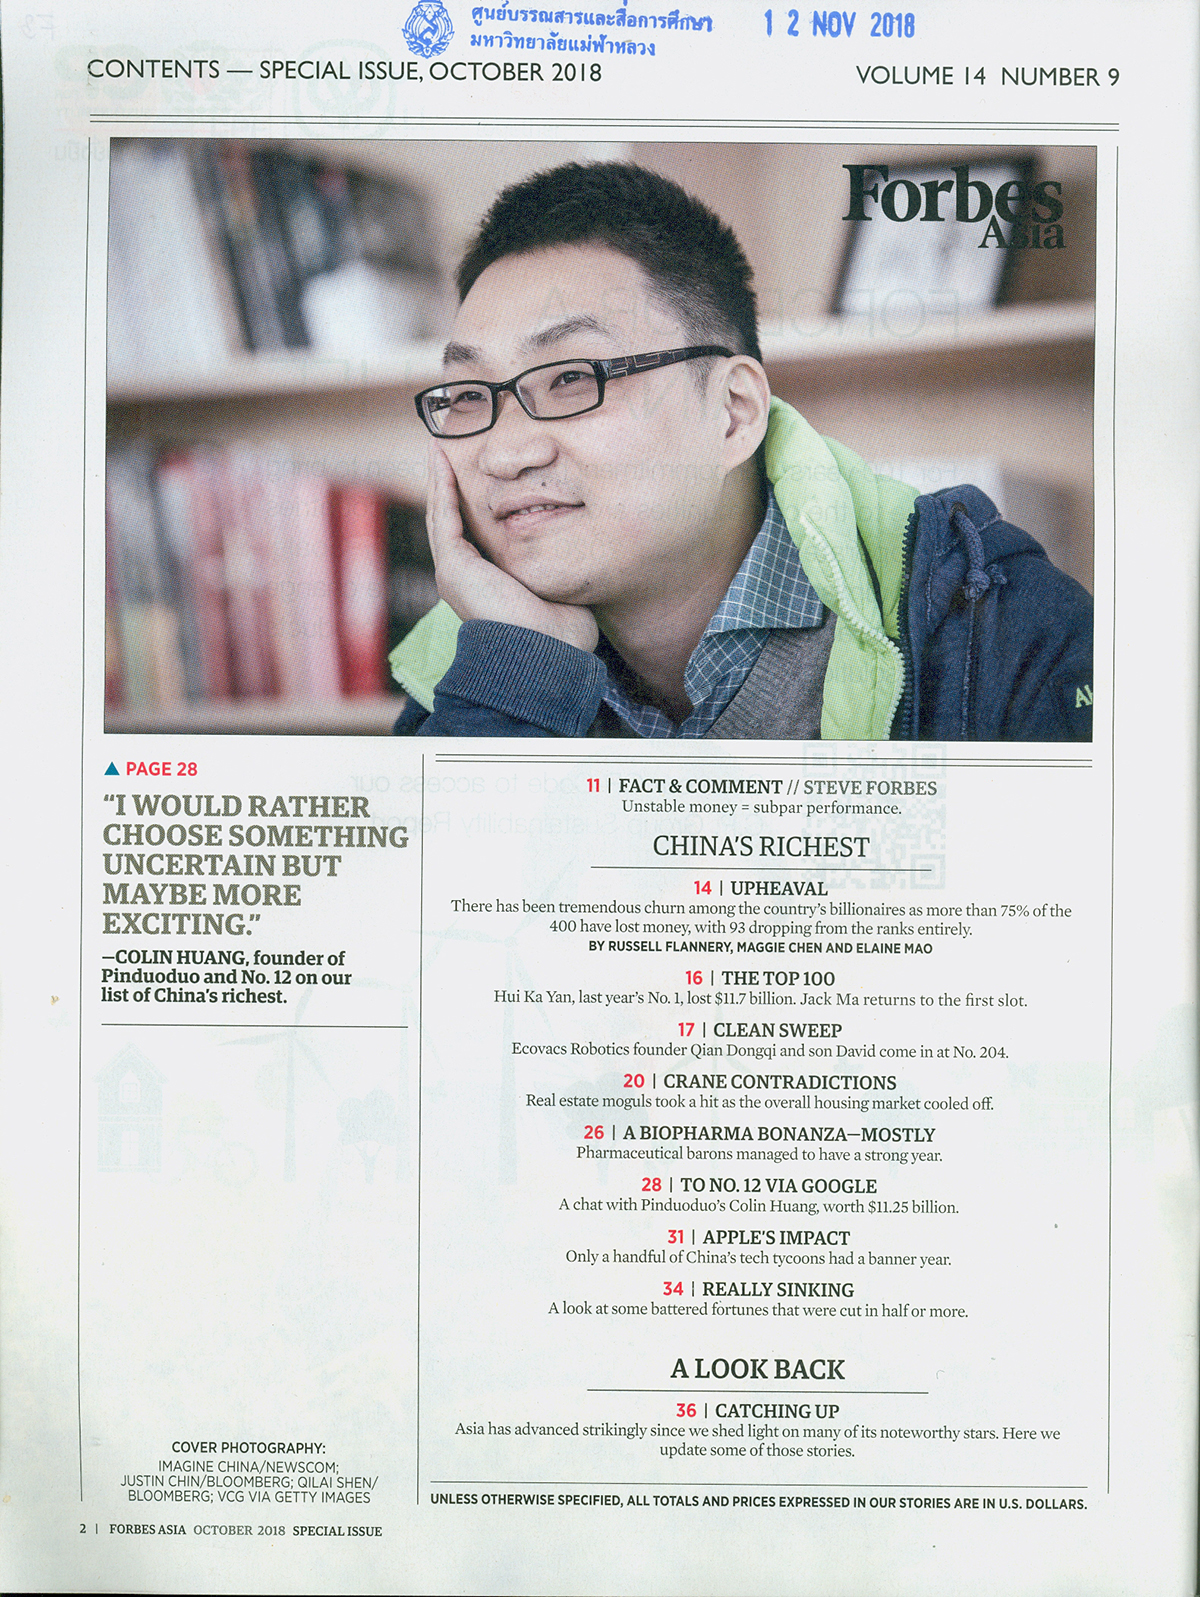 Forbes Asia (Special Issue, October 2018) – Current Contents